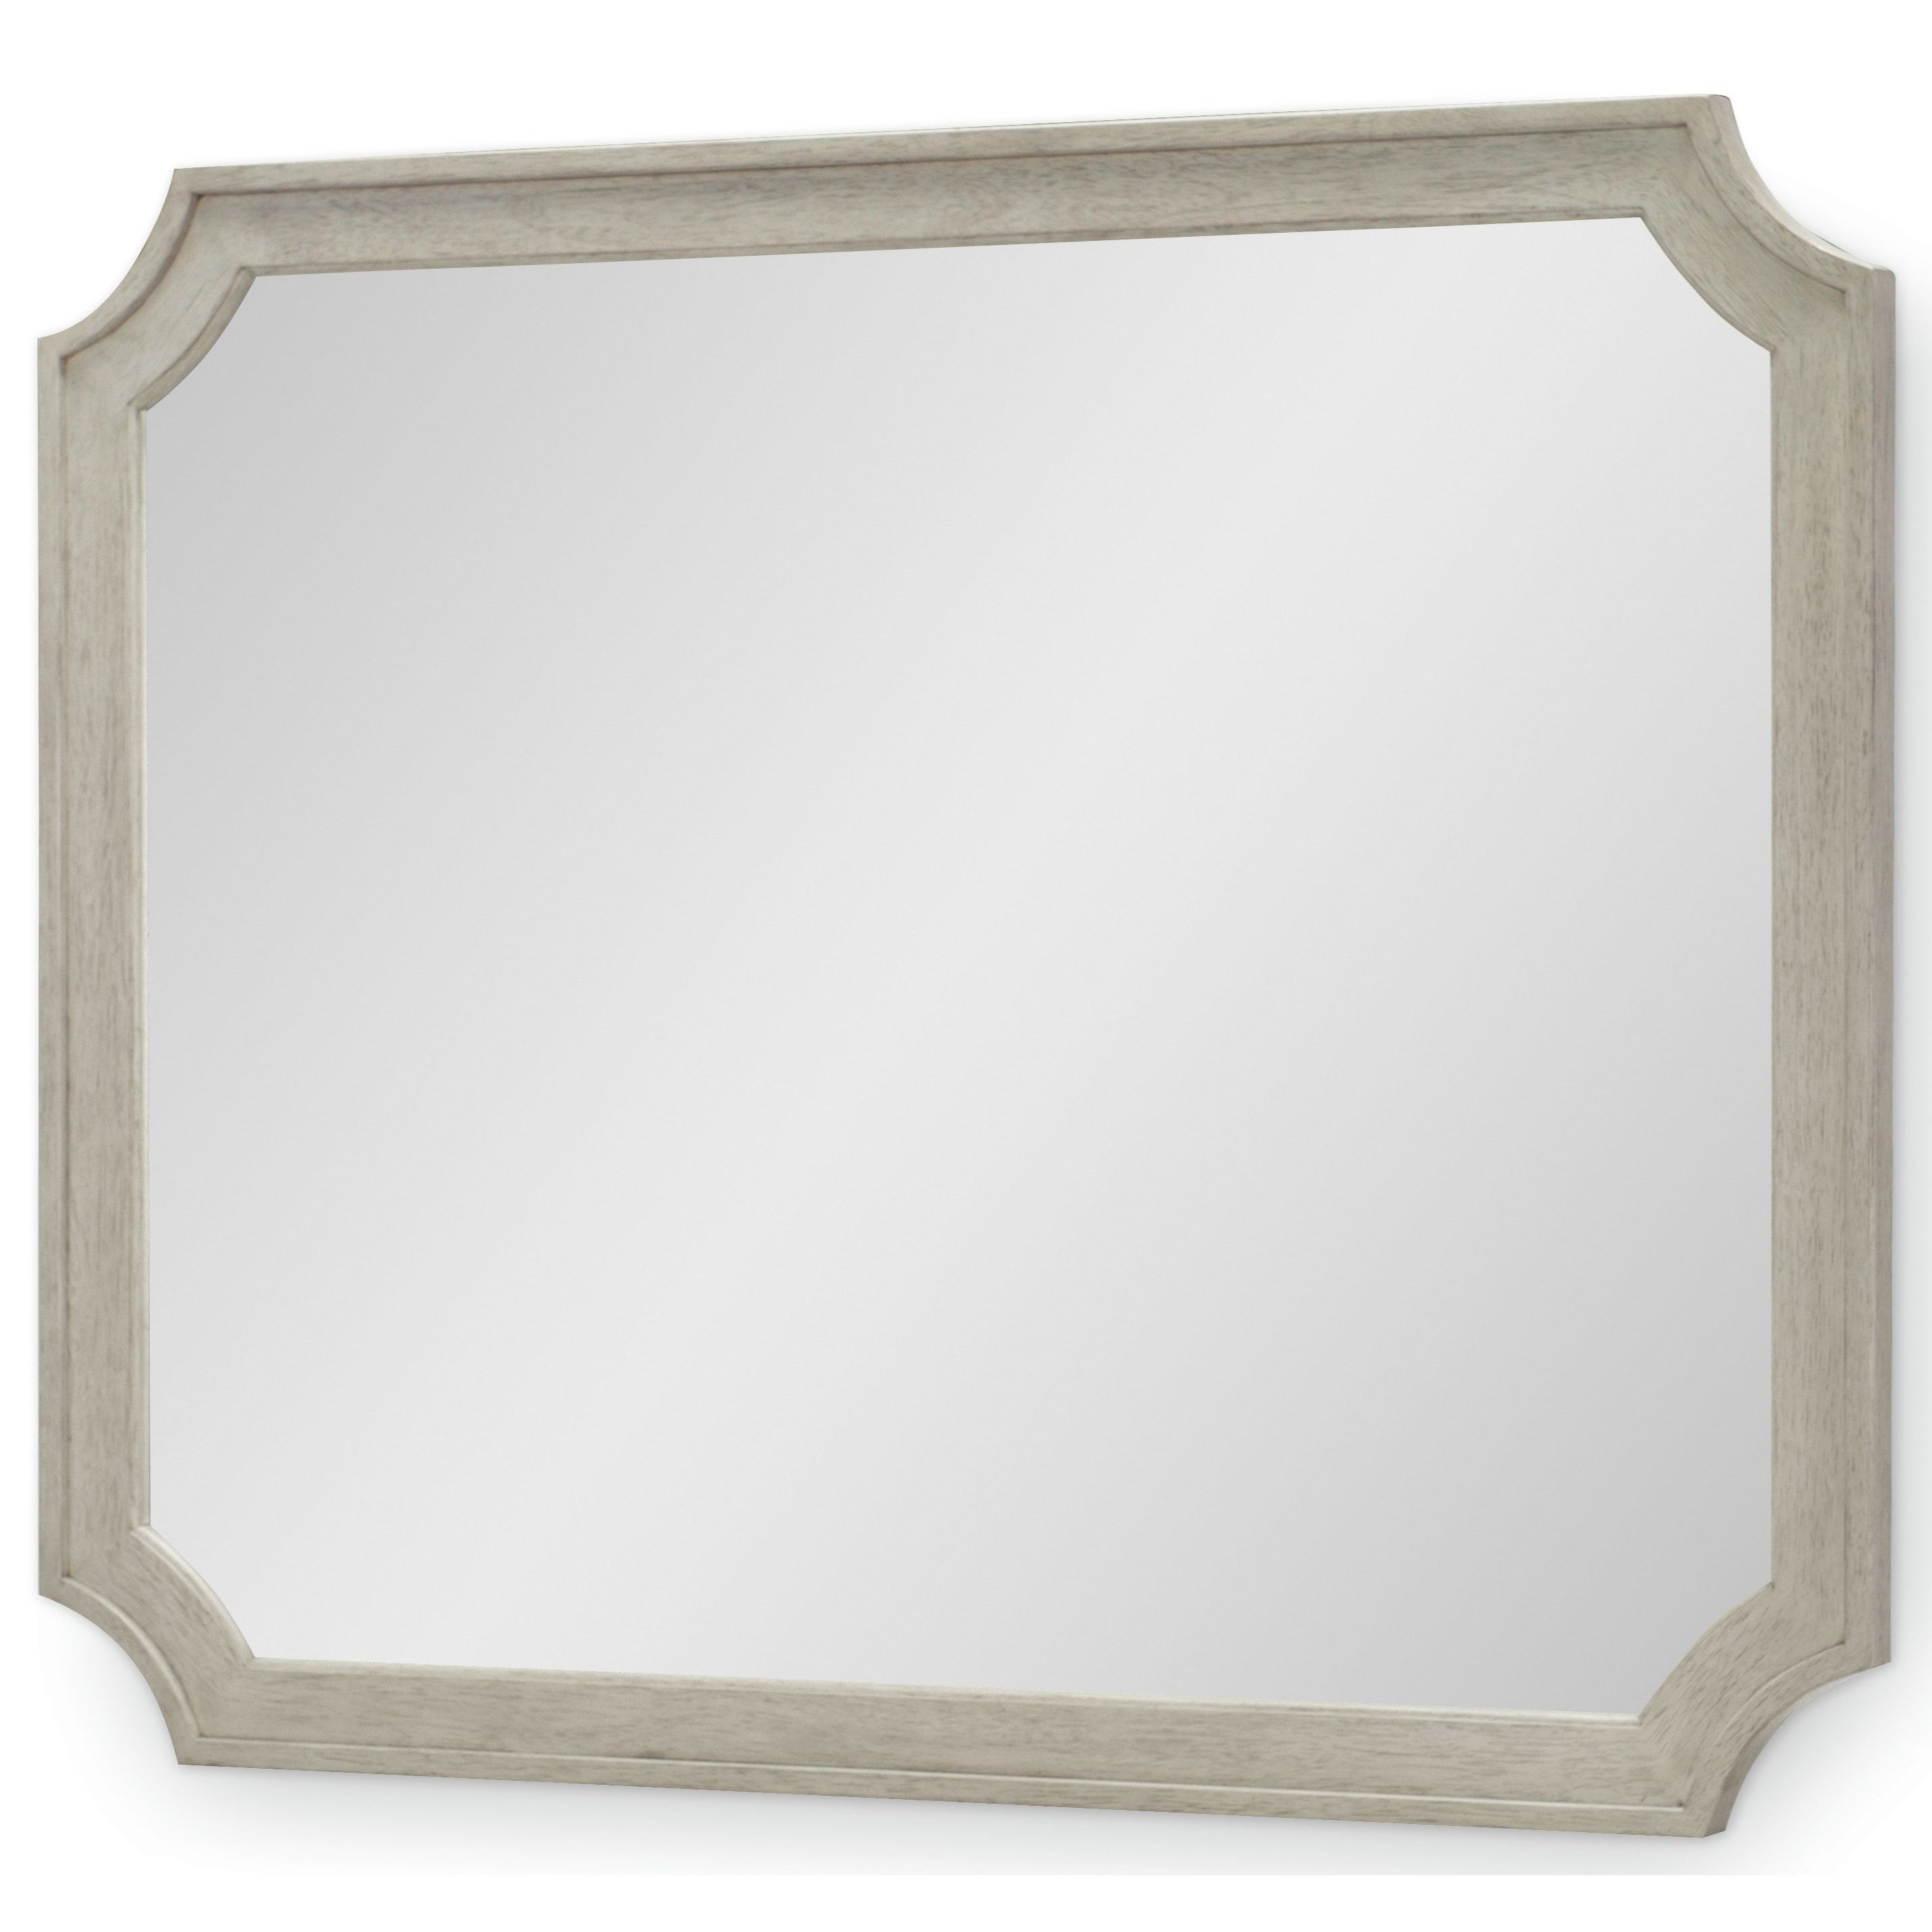 Rachael Ray Home by Legacy Classic Cinema Landscape Mirror  - Item Number: 7200-0200